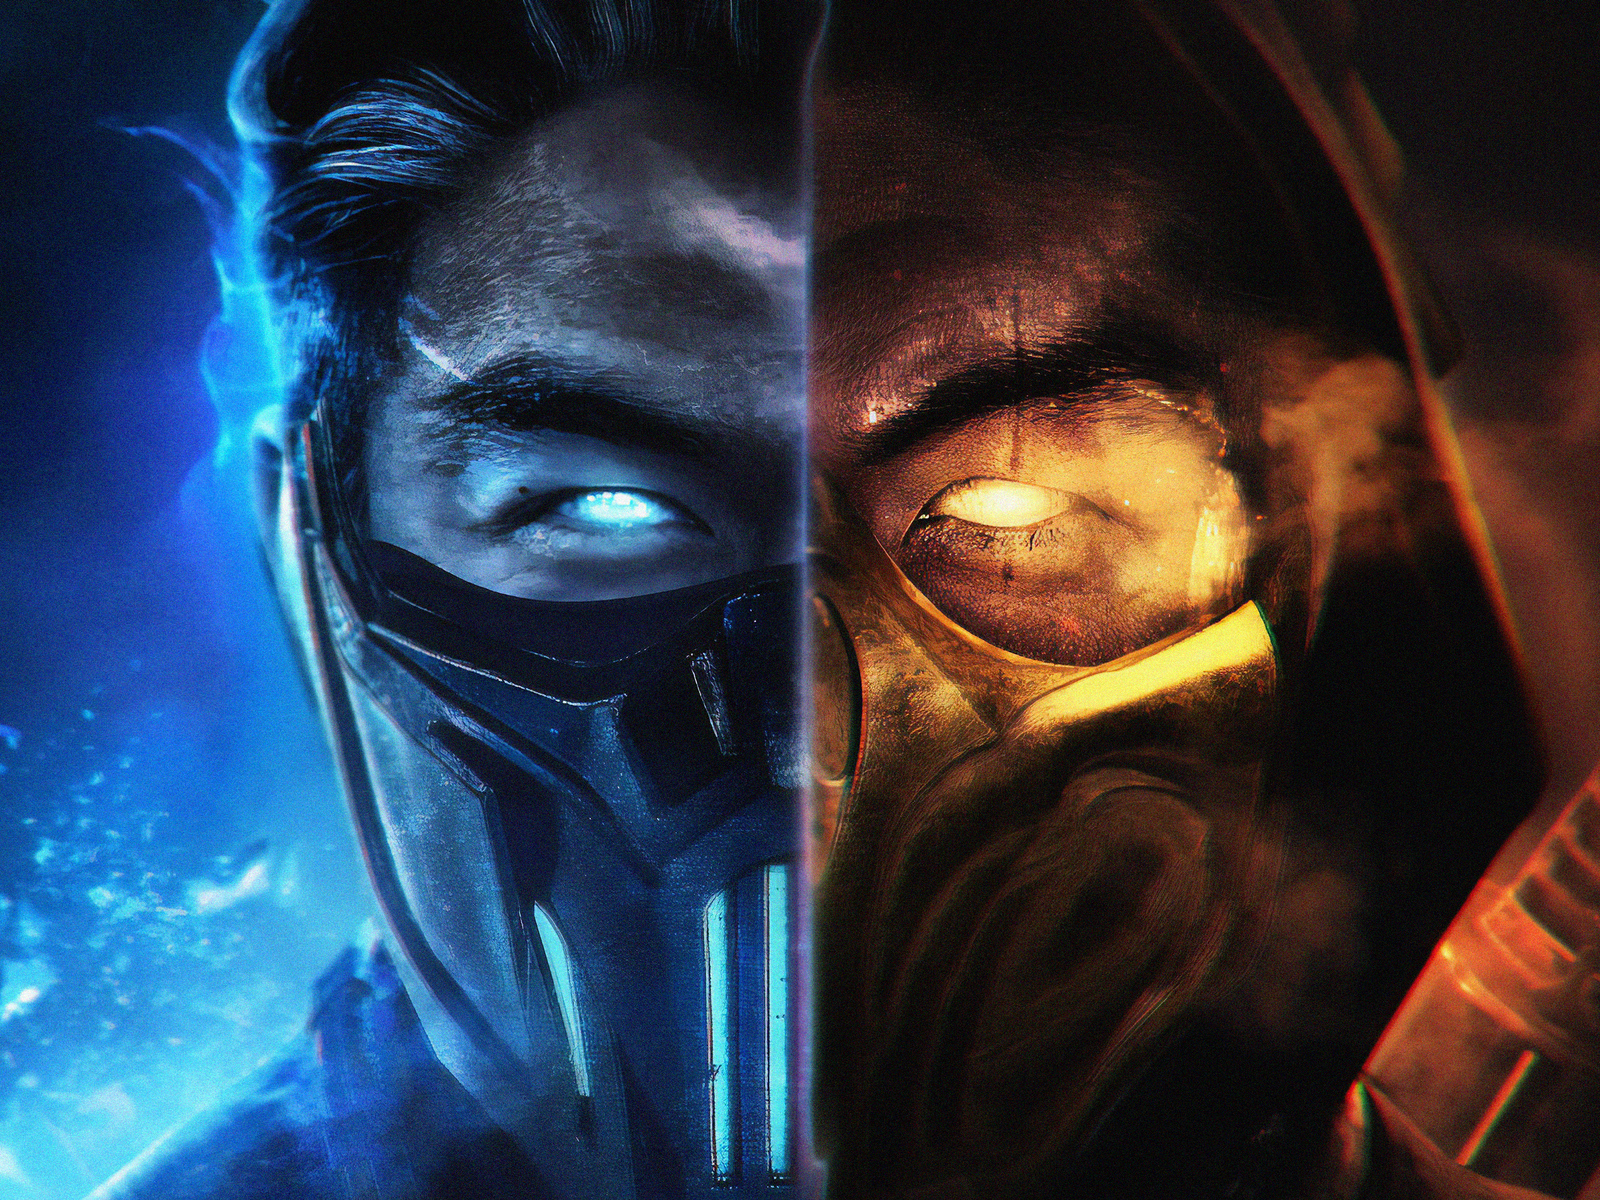 1600x1200 Mortal Kombat Subzero And Scorpion 1600x1200